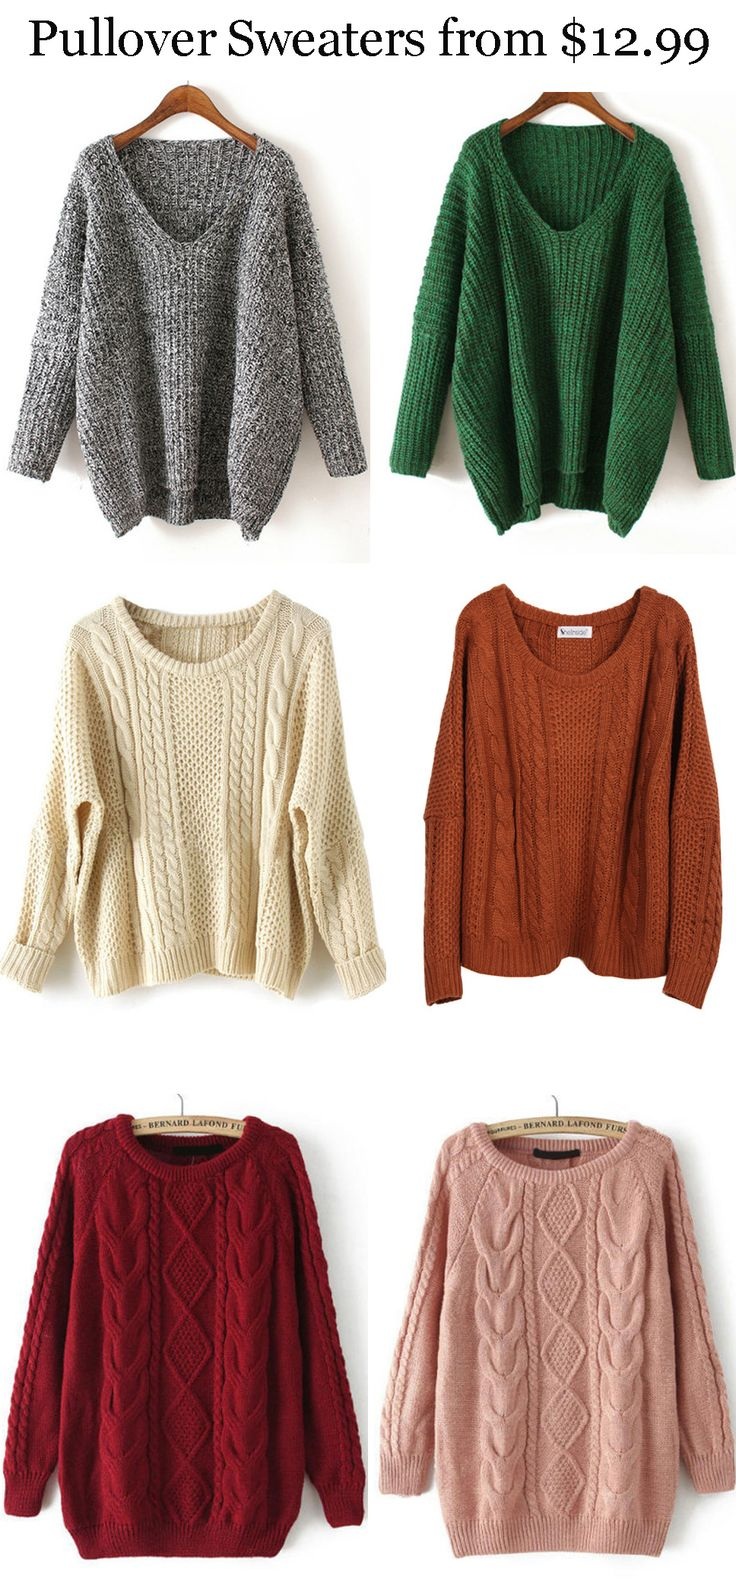 Pullover Sweater - Great material, Best Design, Our custom prefer this warm one so much !